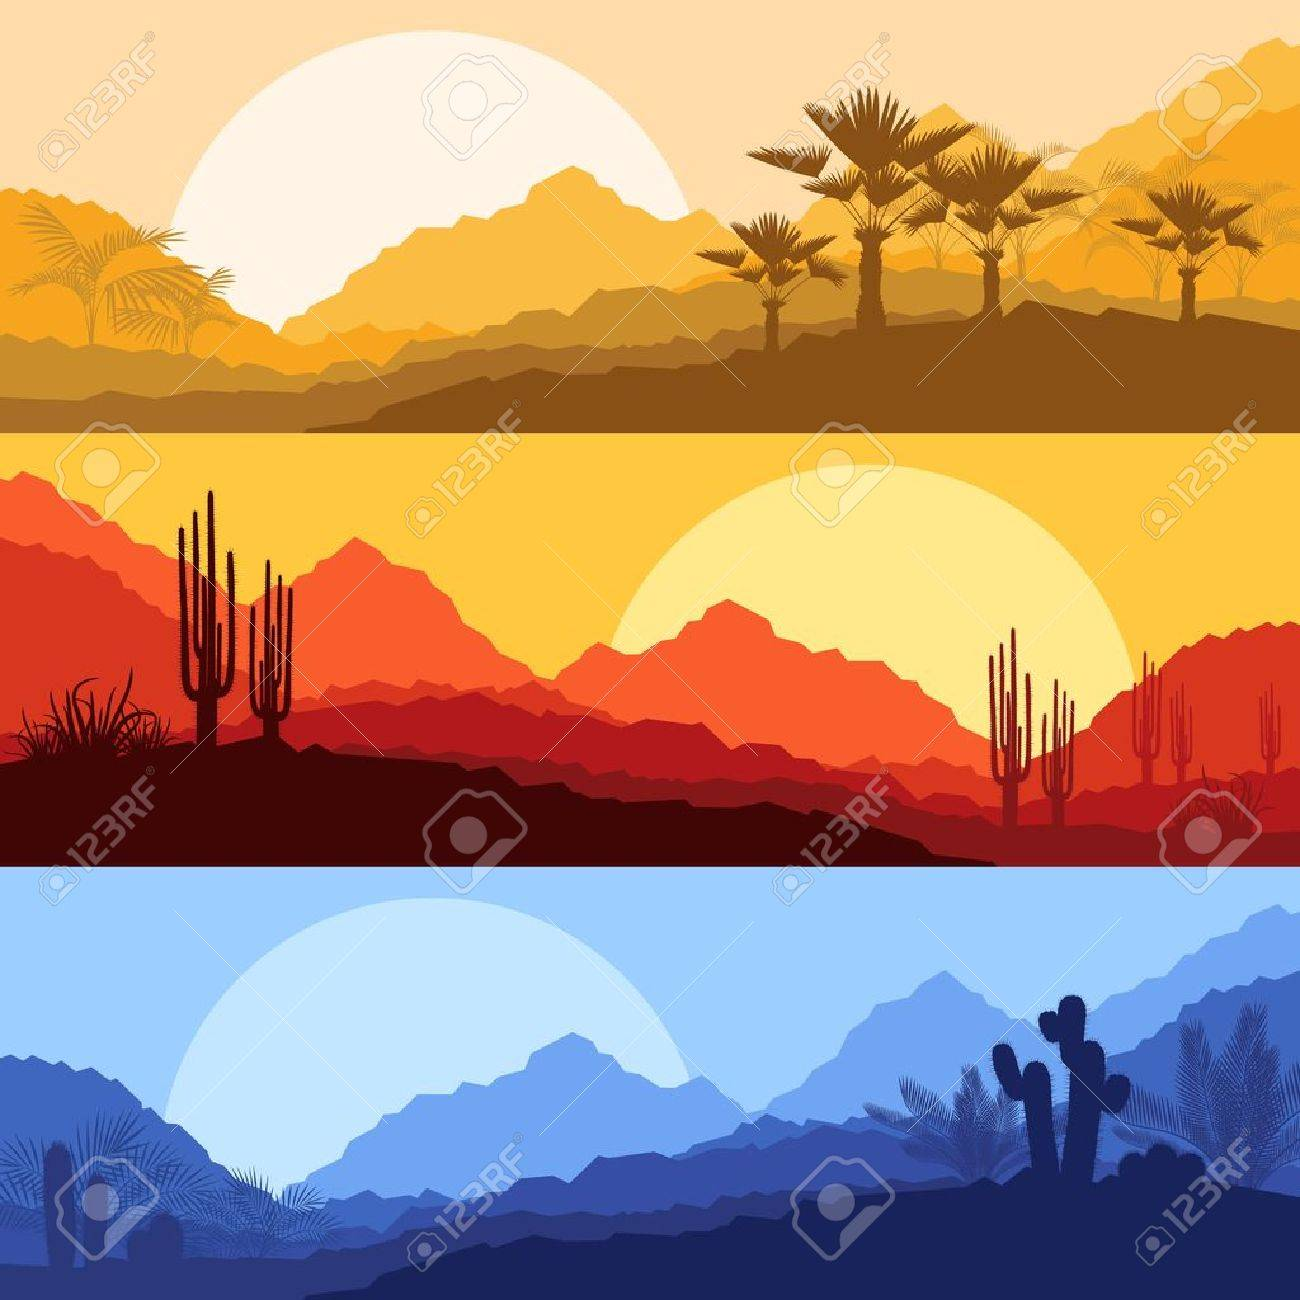 Desert wild nature landscapes with cactus and palm tree plants Stock Vector - 16932688